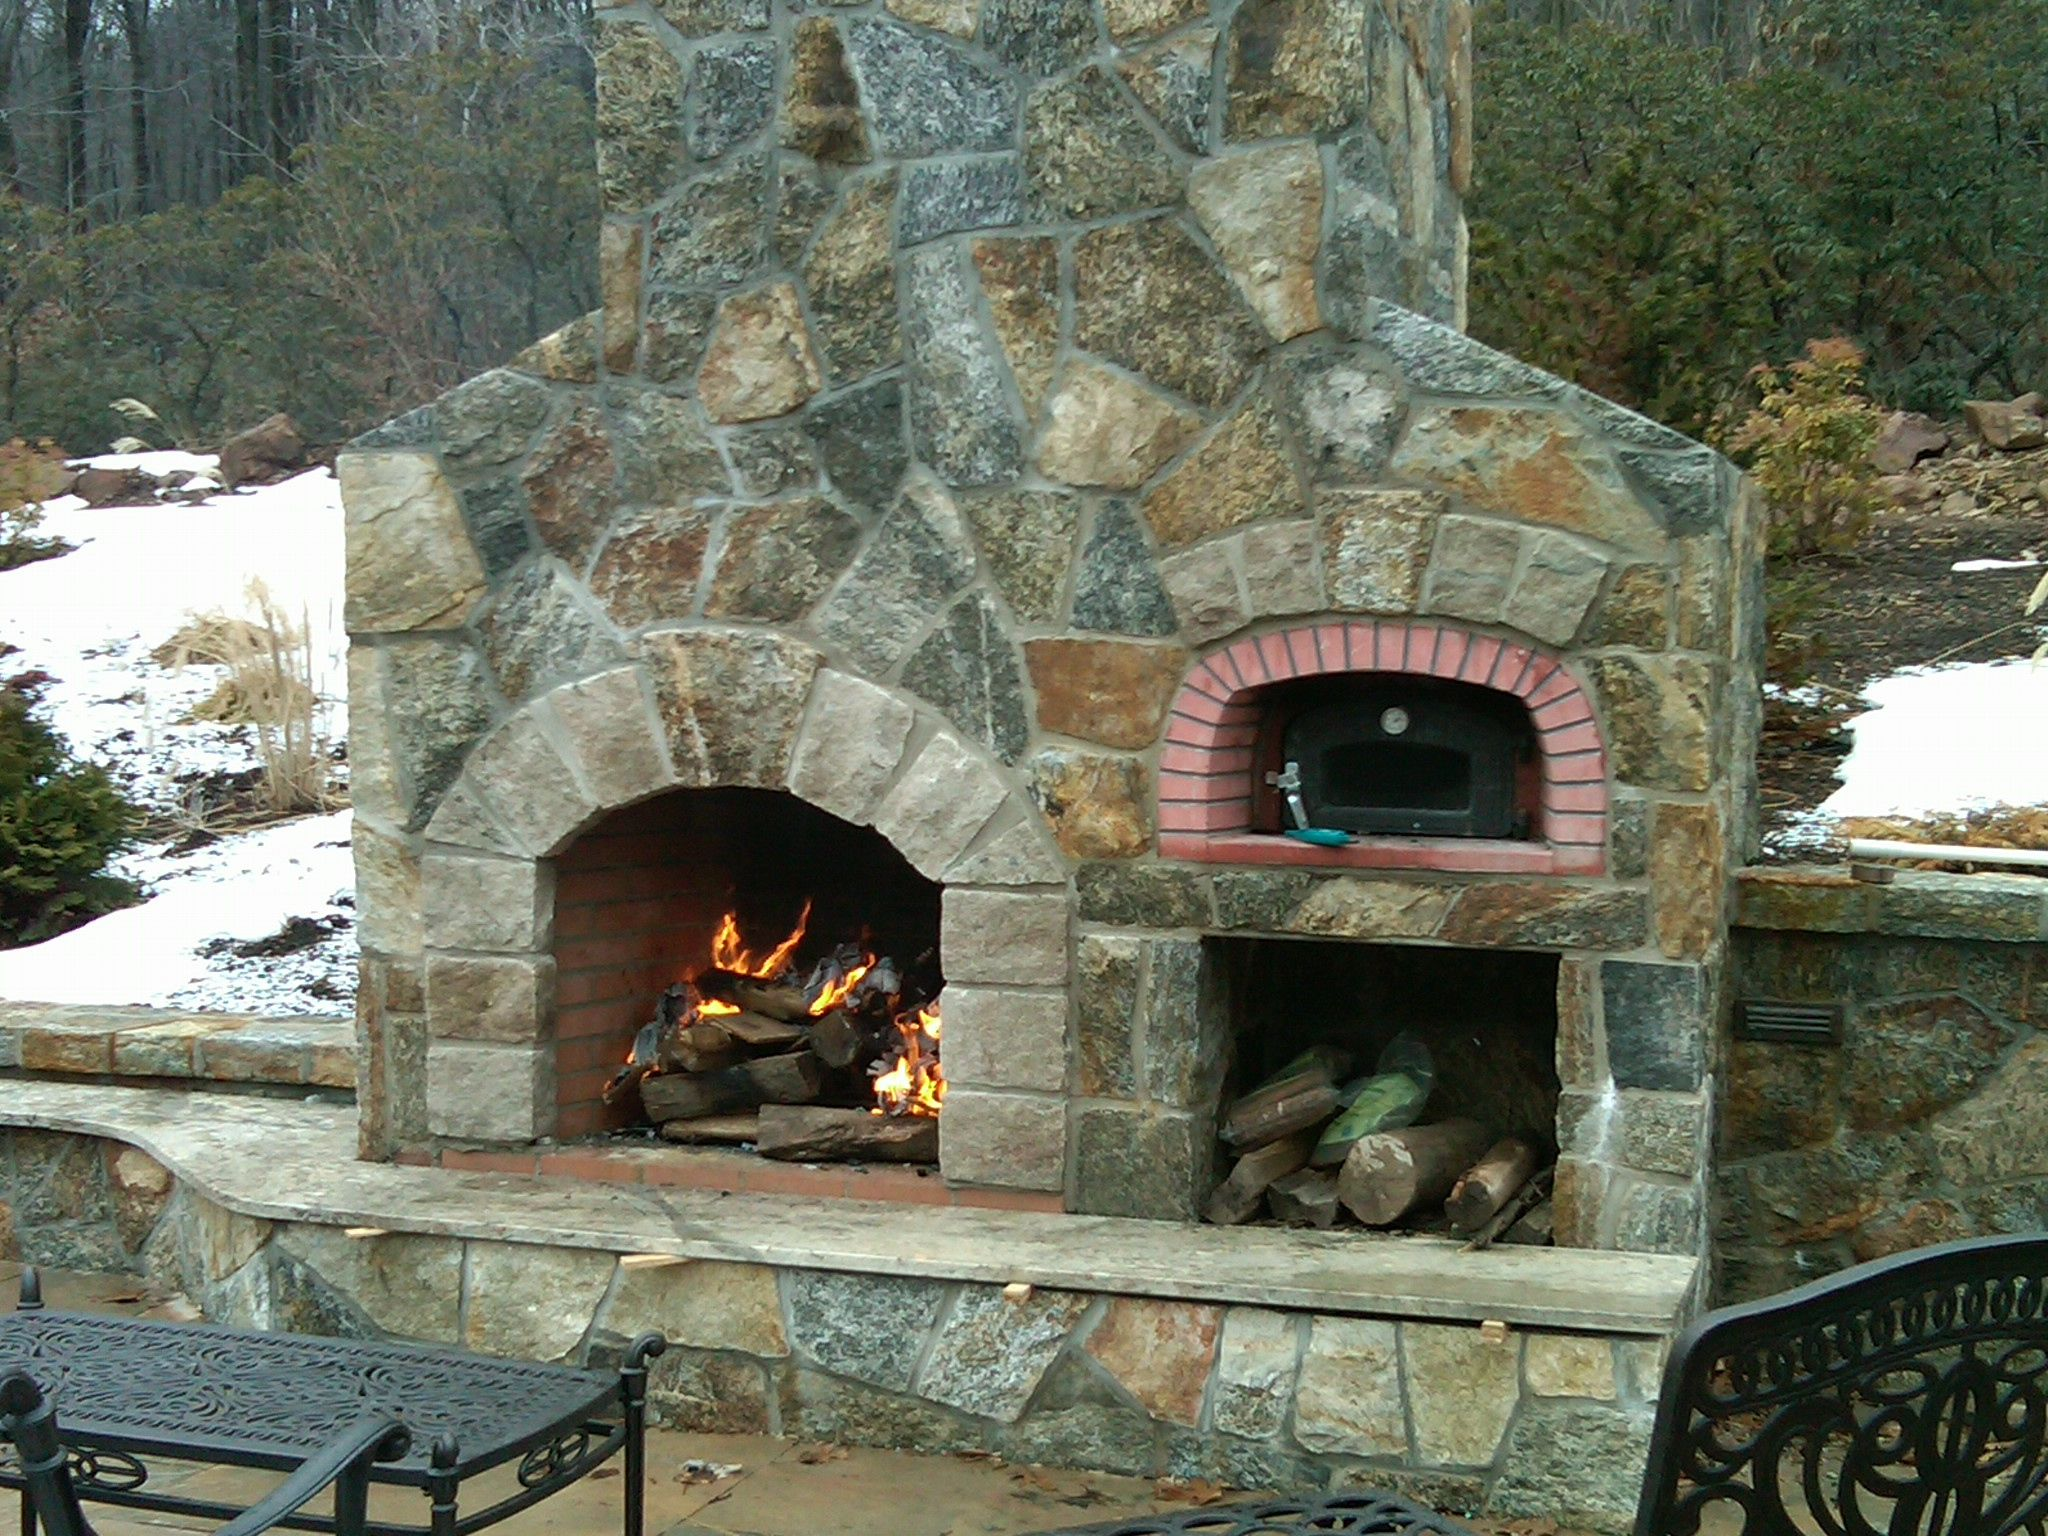 Outdoor Fireplace And Pizza Oven Combination Plans What Is The Best Interior Paint Check Outdoor Fireplace Pizza Oven Pizza Oven Fireplace Pizza Oven Outdoor